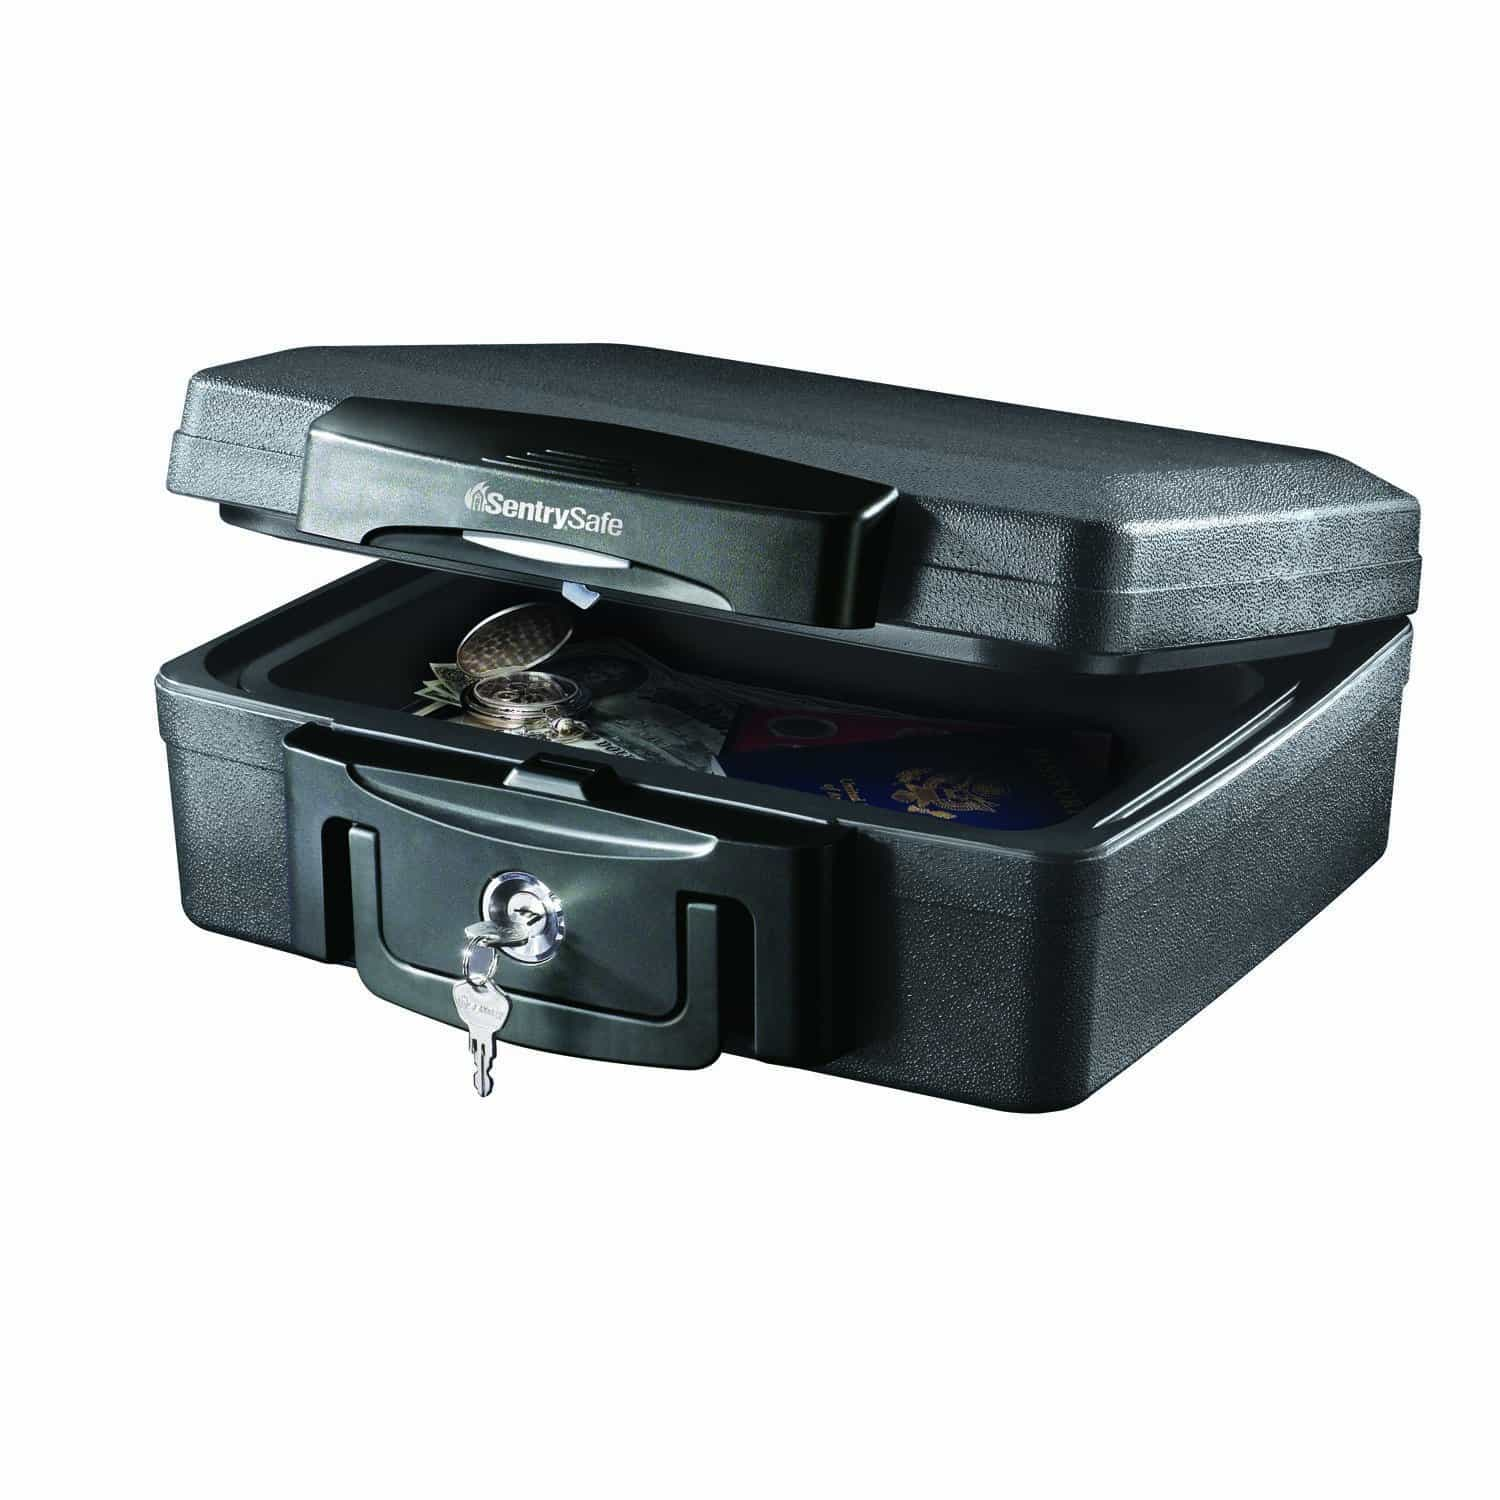 20 gun safes best price